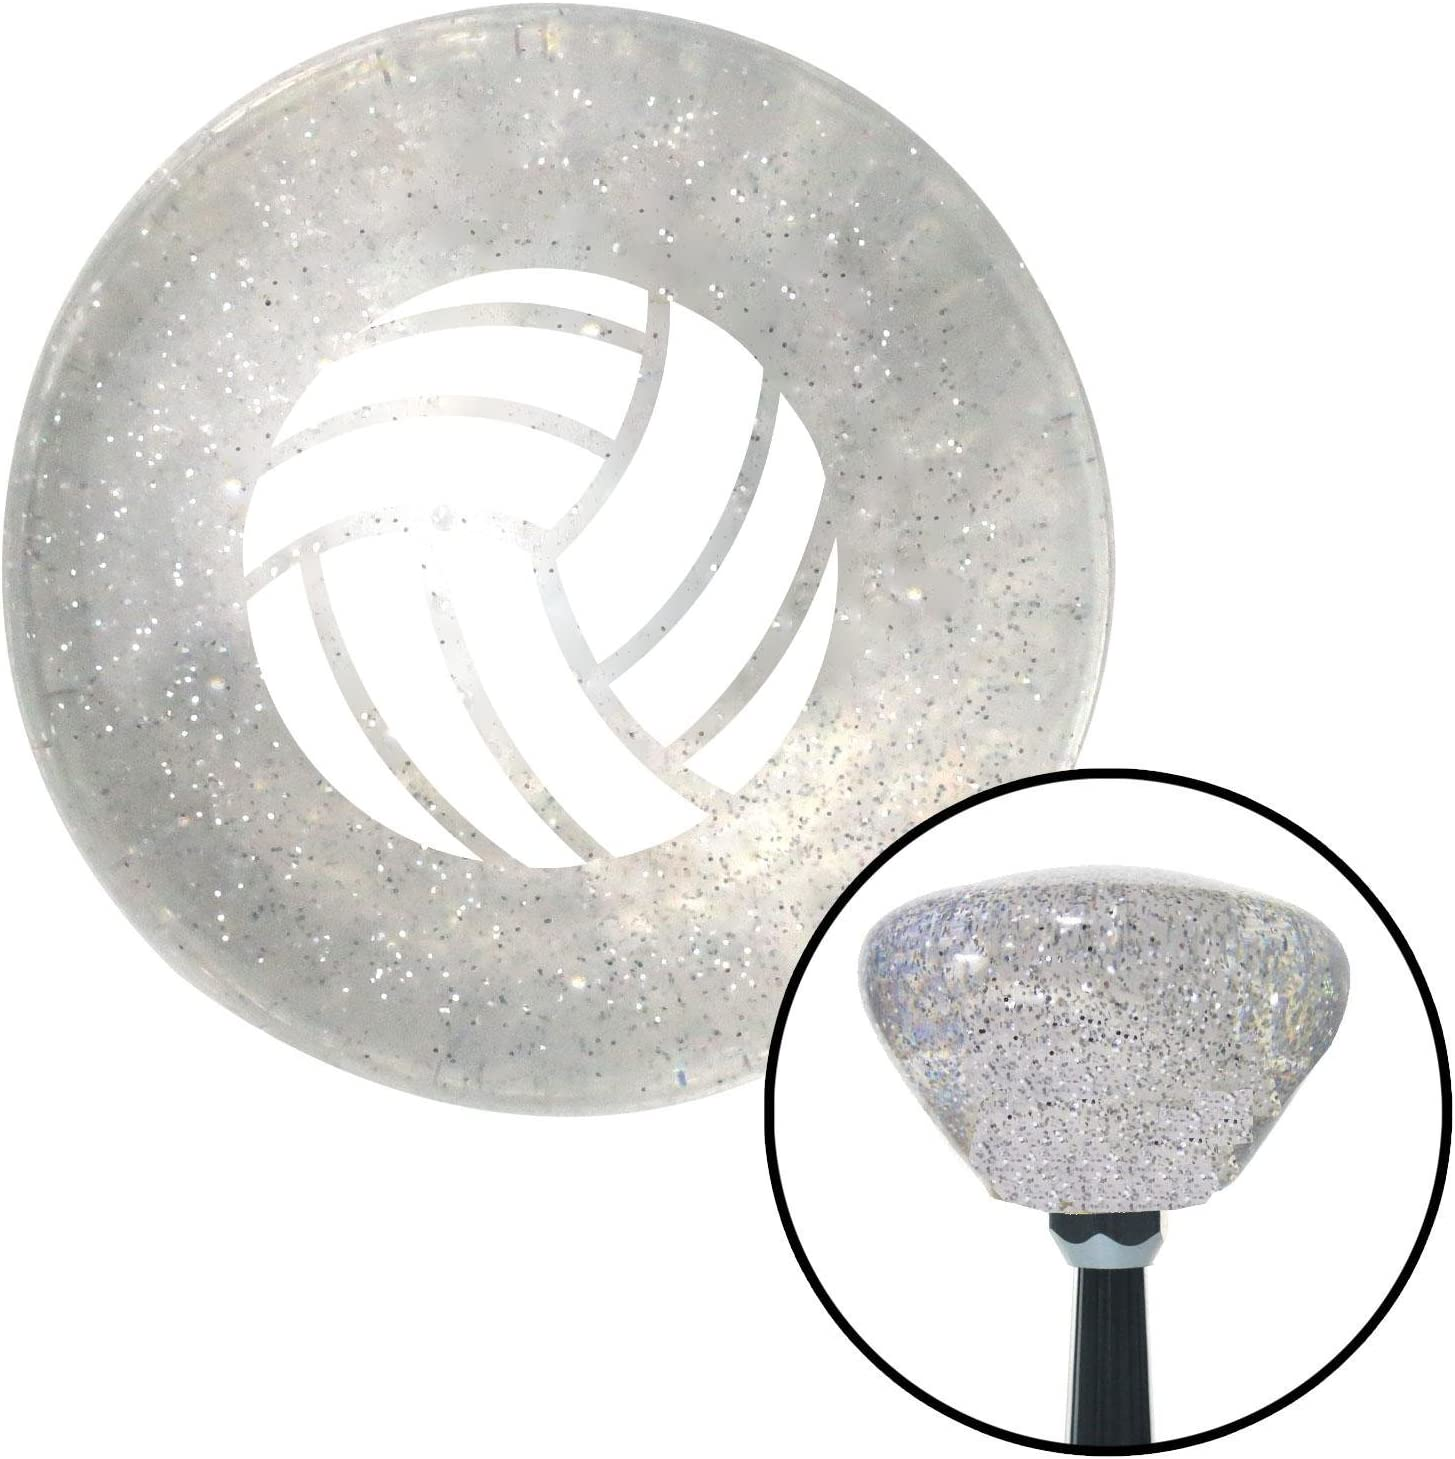 American Shifter 163465 Clear Retro Metal Flake Shift Knob with M16 x 1.5 Insert White Volleyball